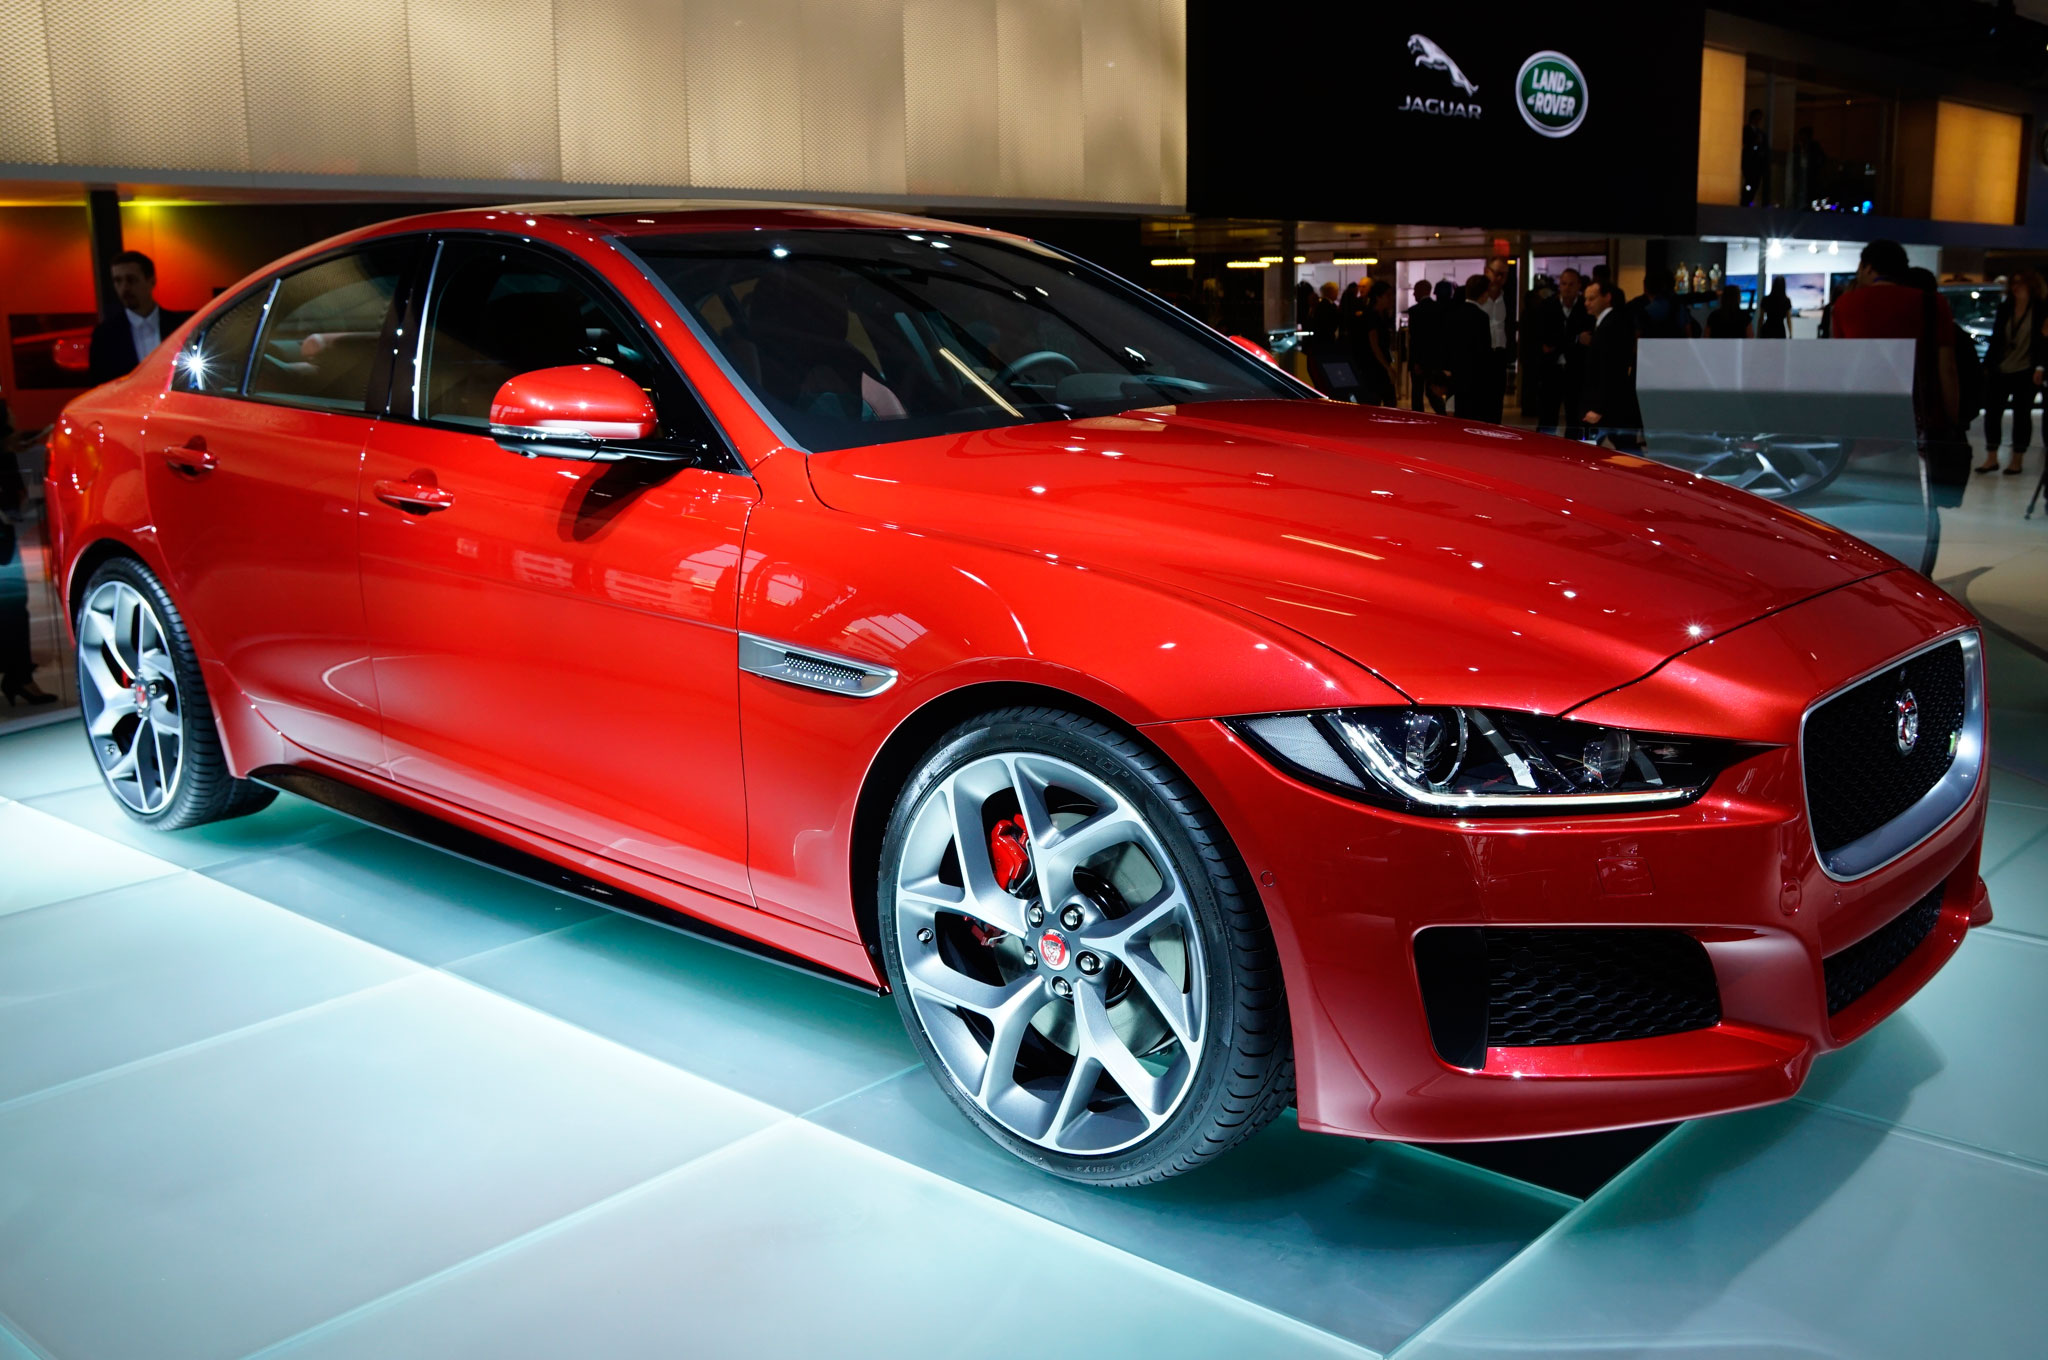 2016 Jaguar XE Front Three Quarter View 1